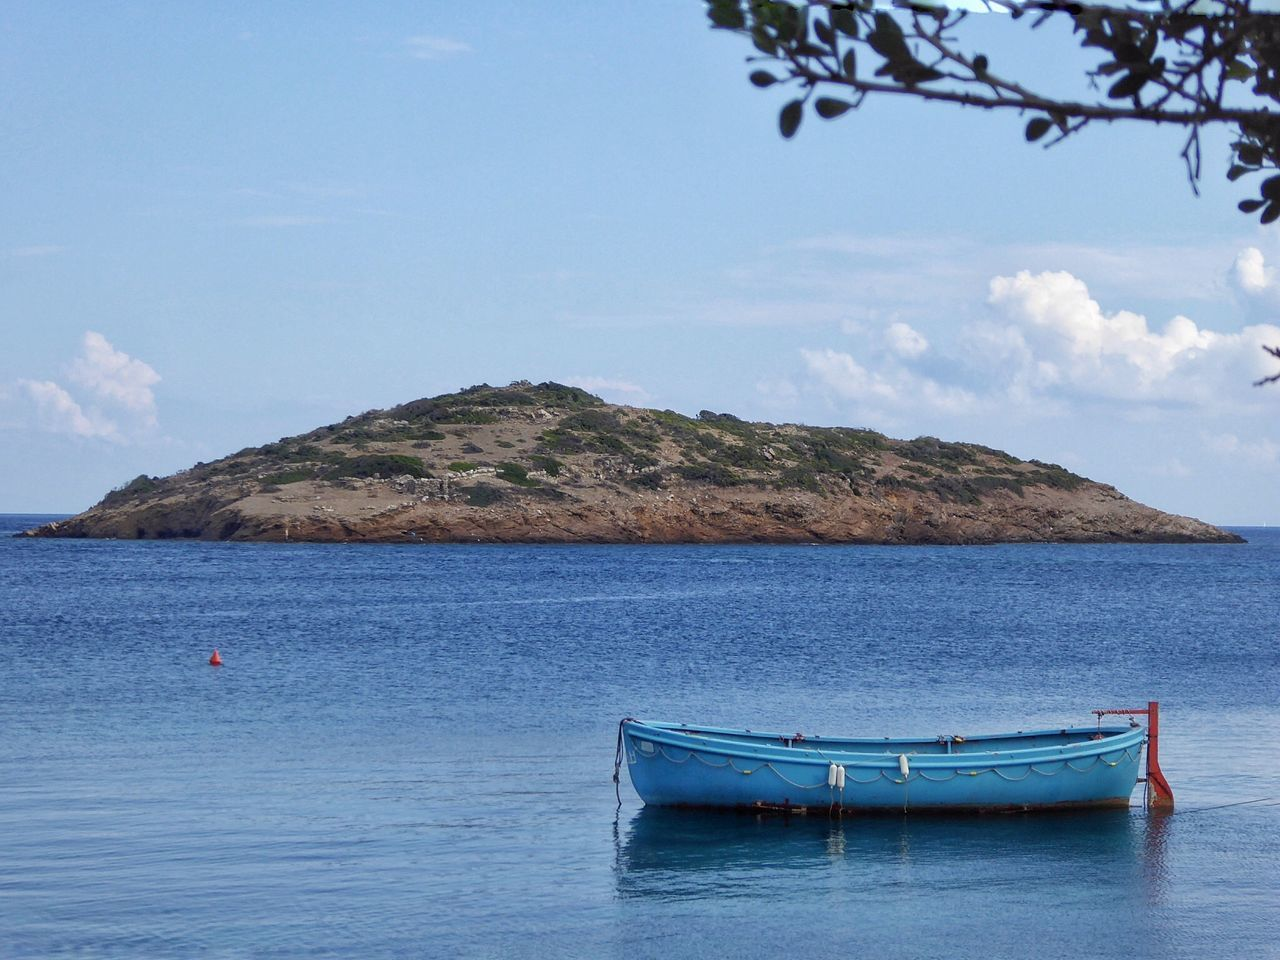 Dodecanese Marathi Marathi Island Greece GREECE ♥♥ Island Island Life Landscape Landscape_Collection Landscape_photography Landscape #Nature #photography Seascape Seascape Photography Lonely Boat Perfect View Relaxing